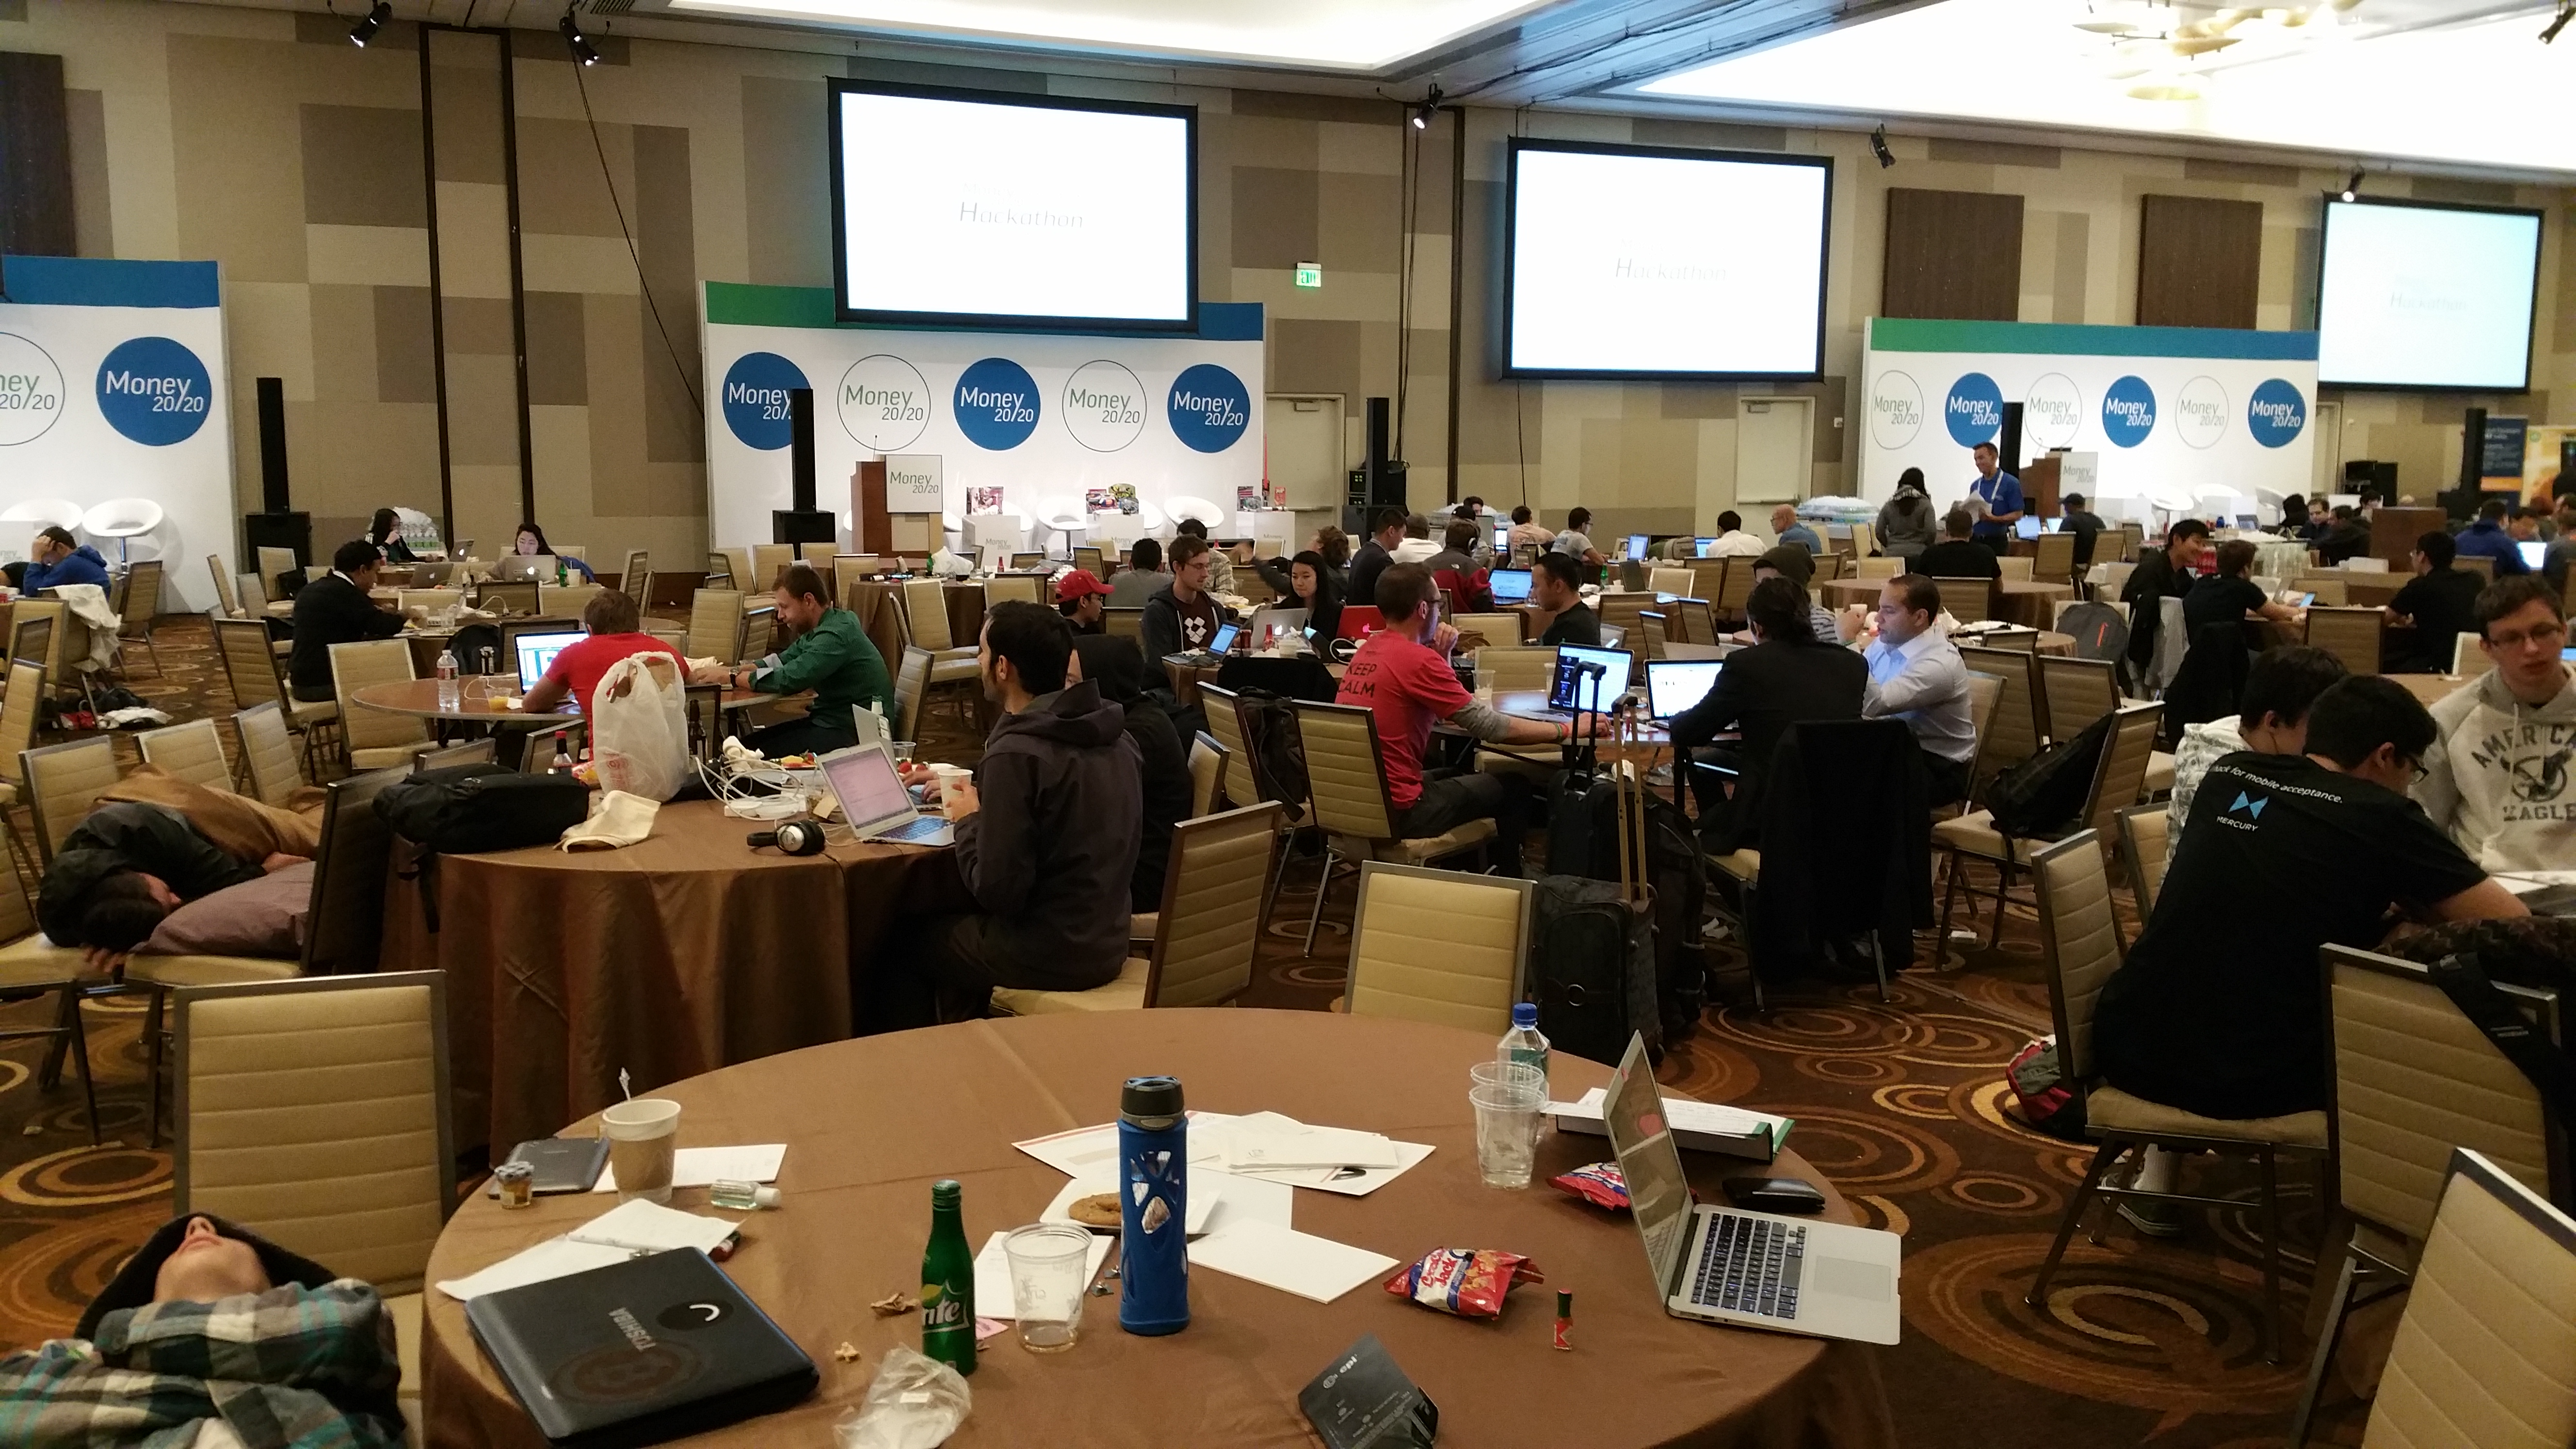 Money 2020 Hackathon participants still hard at work with 3 hours of code left.